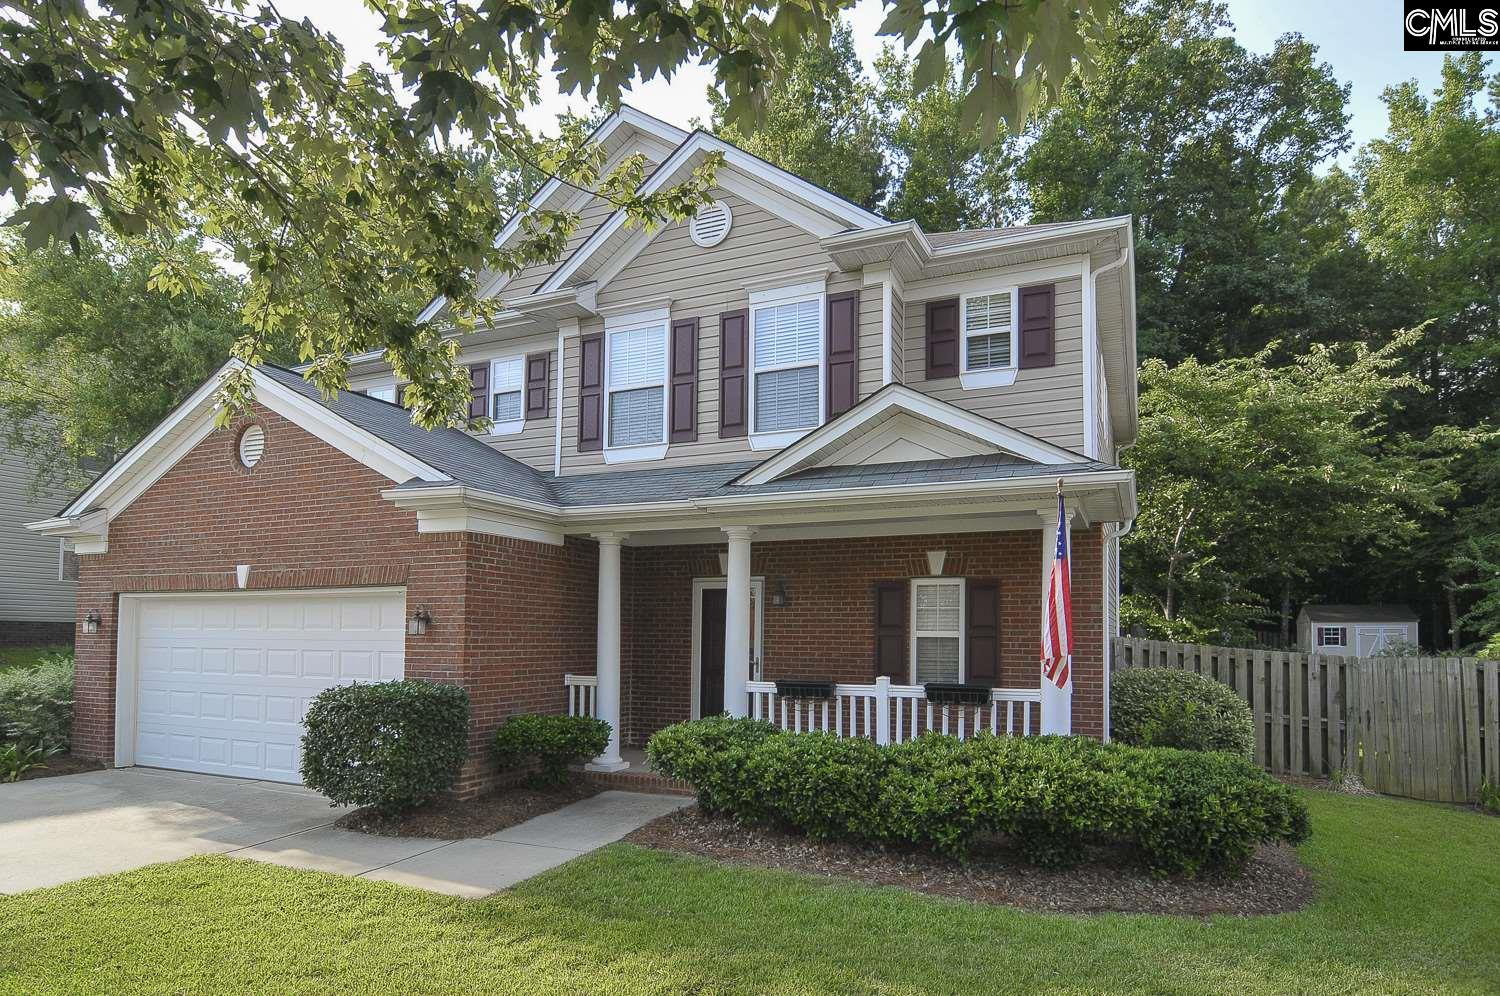 264 Winterberry Lexington, SC 29072-8153